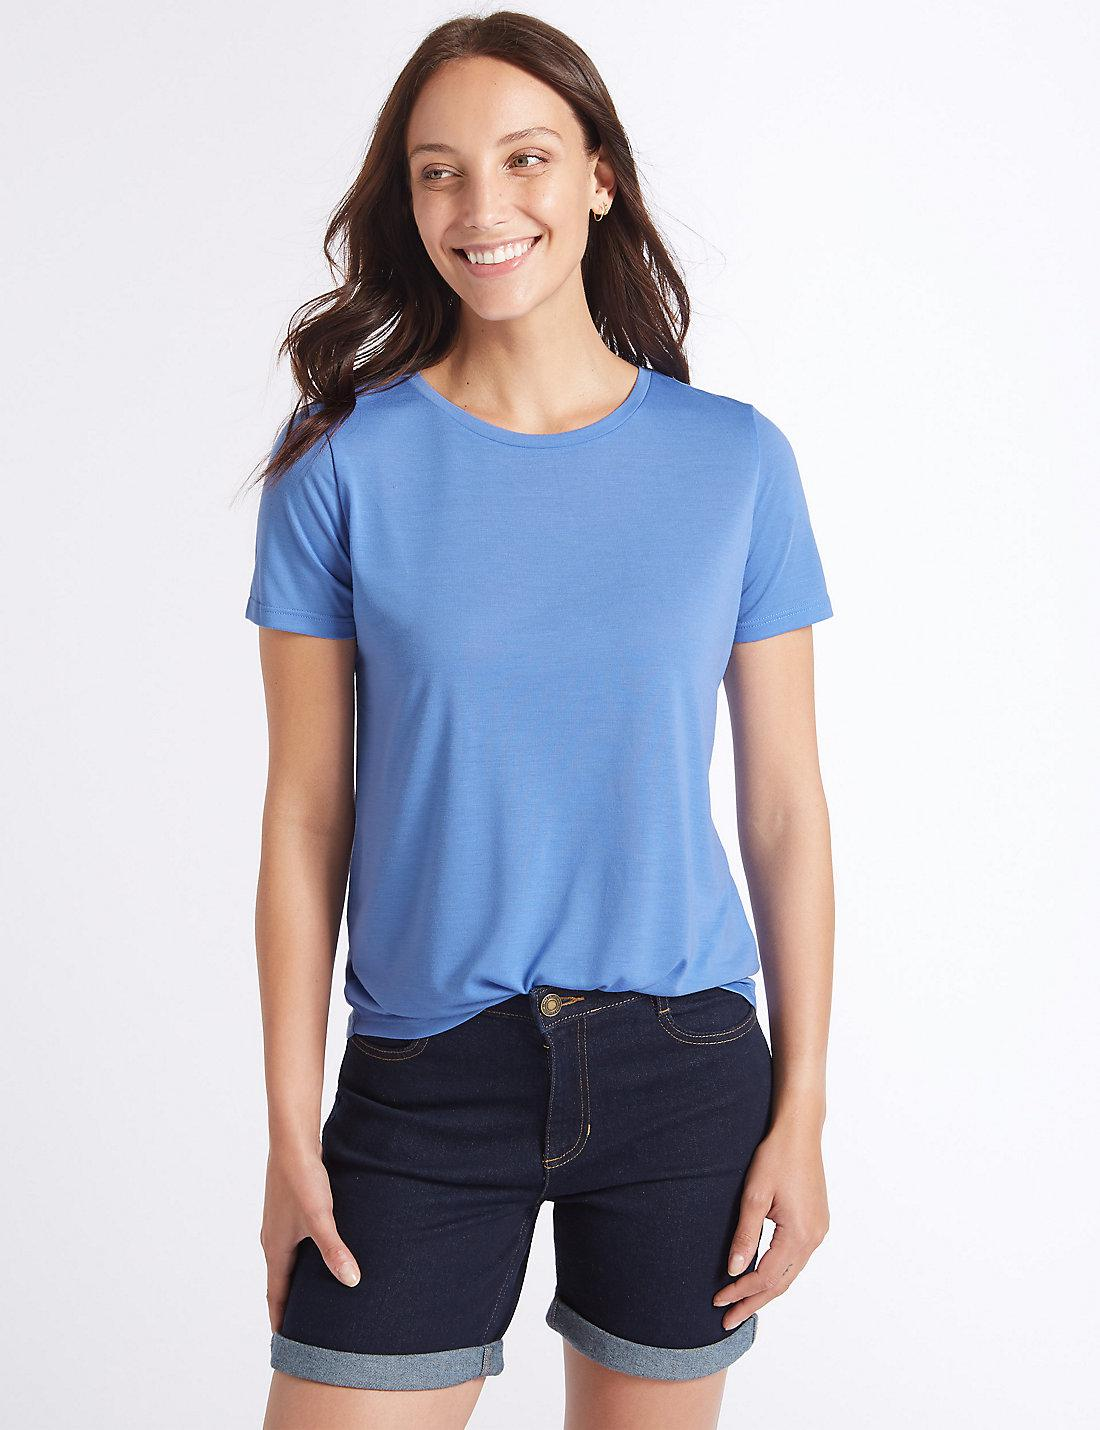 Relaxed Crew Neck T-Shirt blue Marks and Spencer 2018 New For Sale Cheap Sale Pay With Visa Sale 100% Authentic Countdown Package Sale Online pT20BAShjd